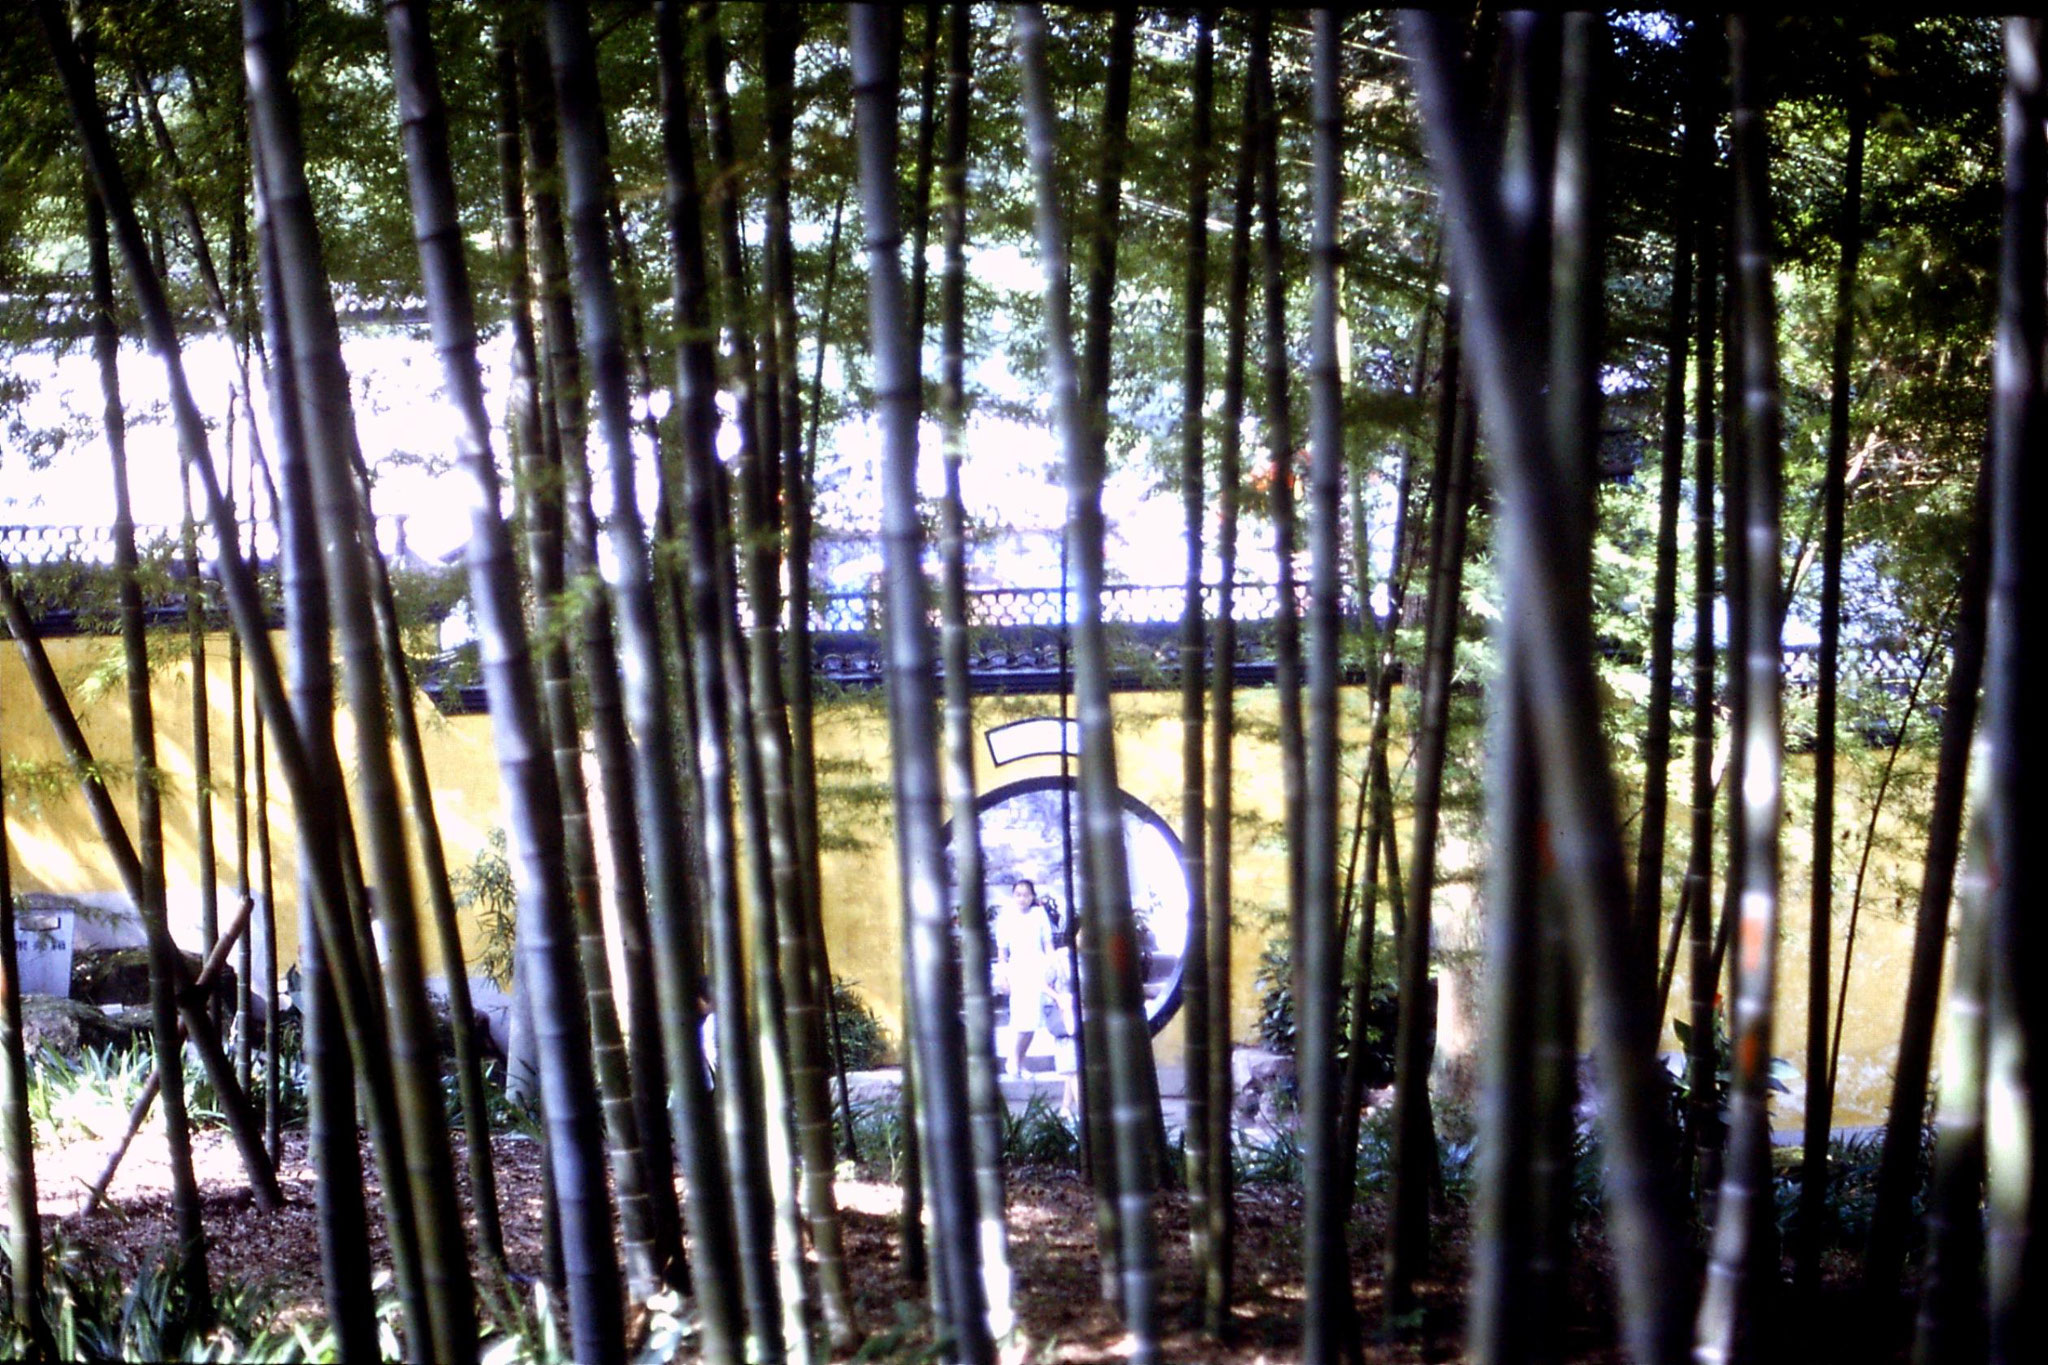 15/7/1989: 24: Yellow Dragon Well  bamboo and 'Old Town'